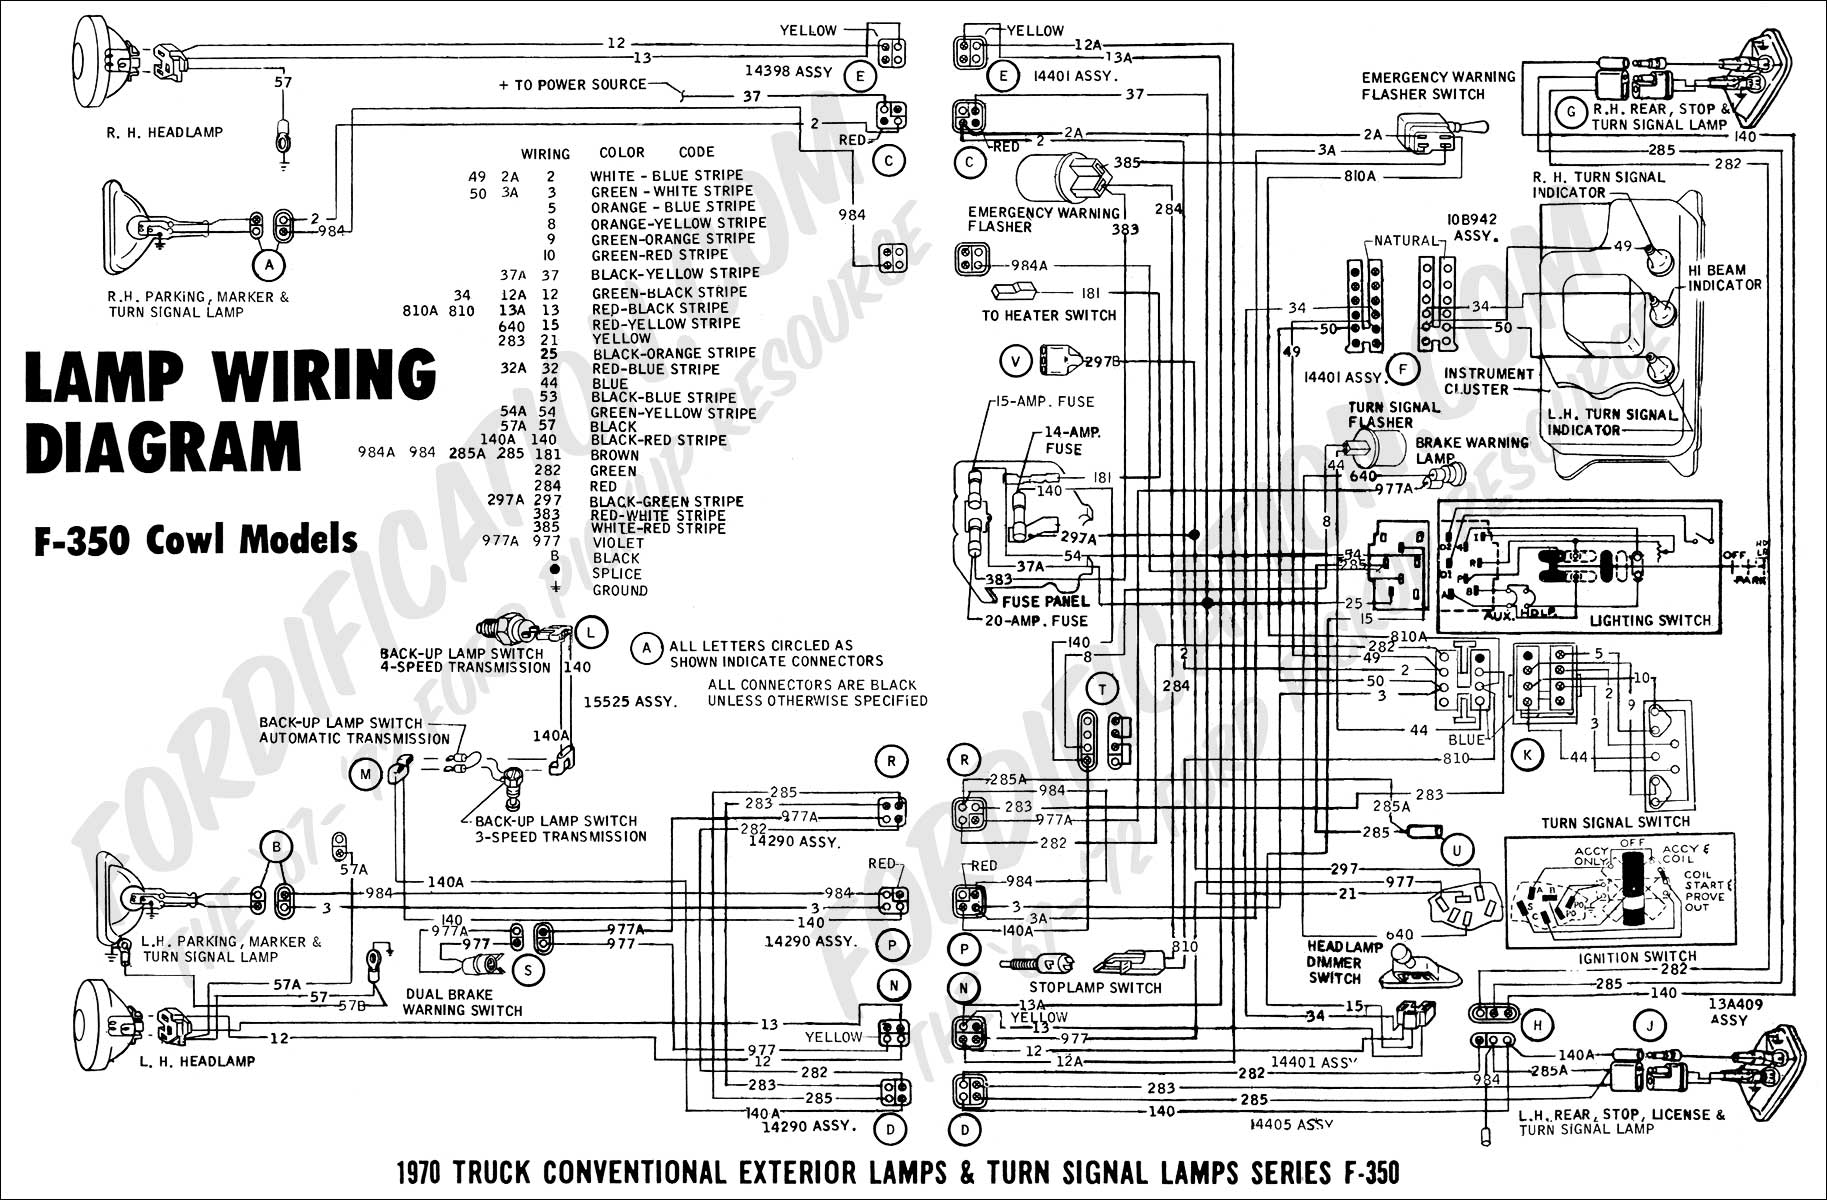 70 Dodge Signal Light Wiring Diagram - Block And Schematic Diagrams •